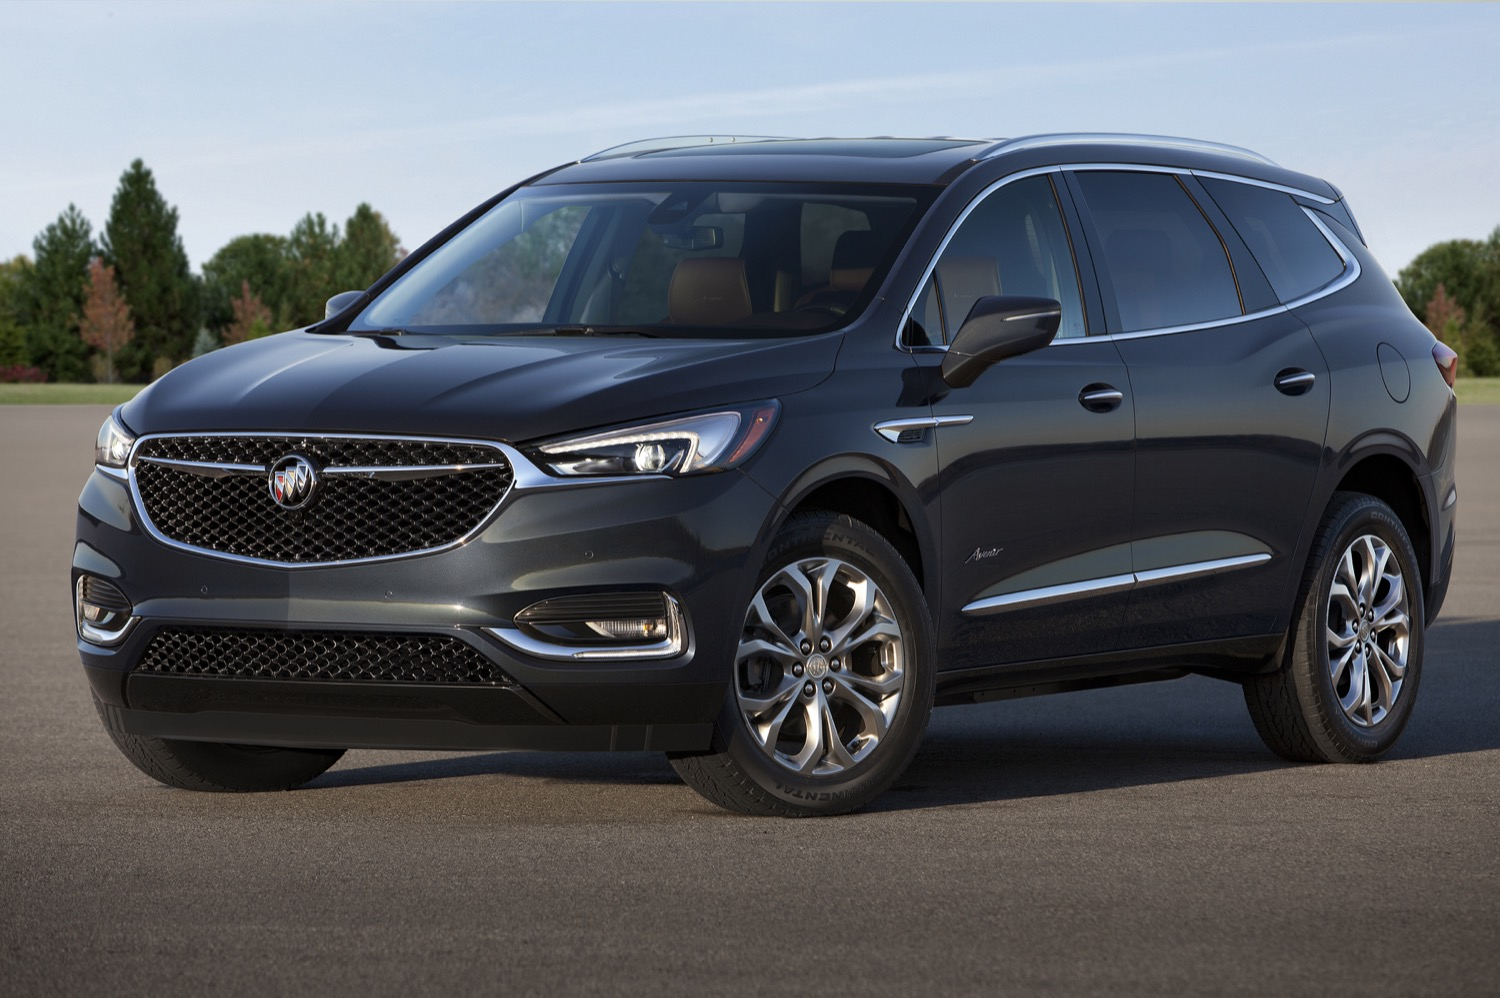 2018 Buick Enclave Info, Pictures, Specs, Wiki | Gm Authority 2022 Buick Enclave Trim Levels, Transmission, Towing